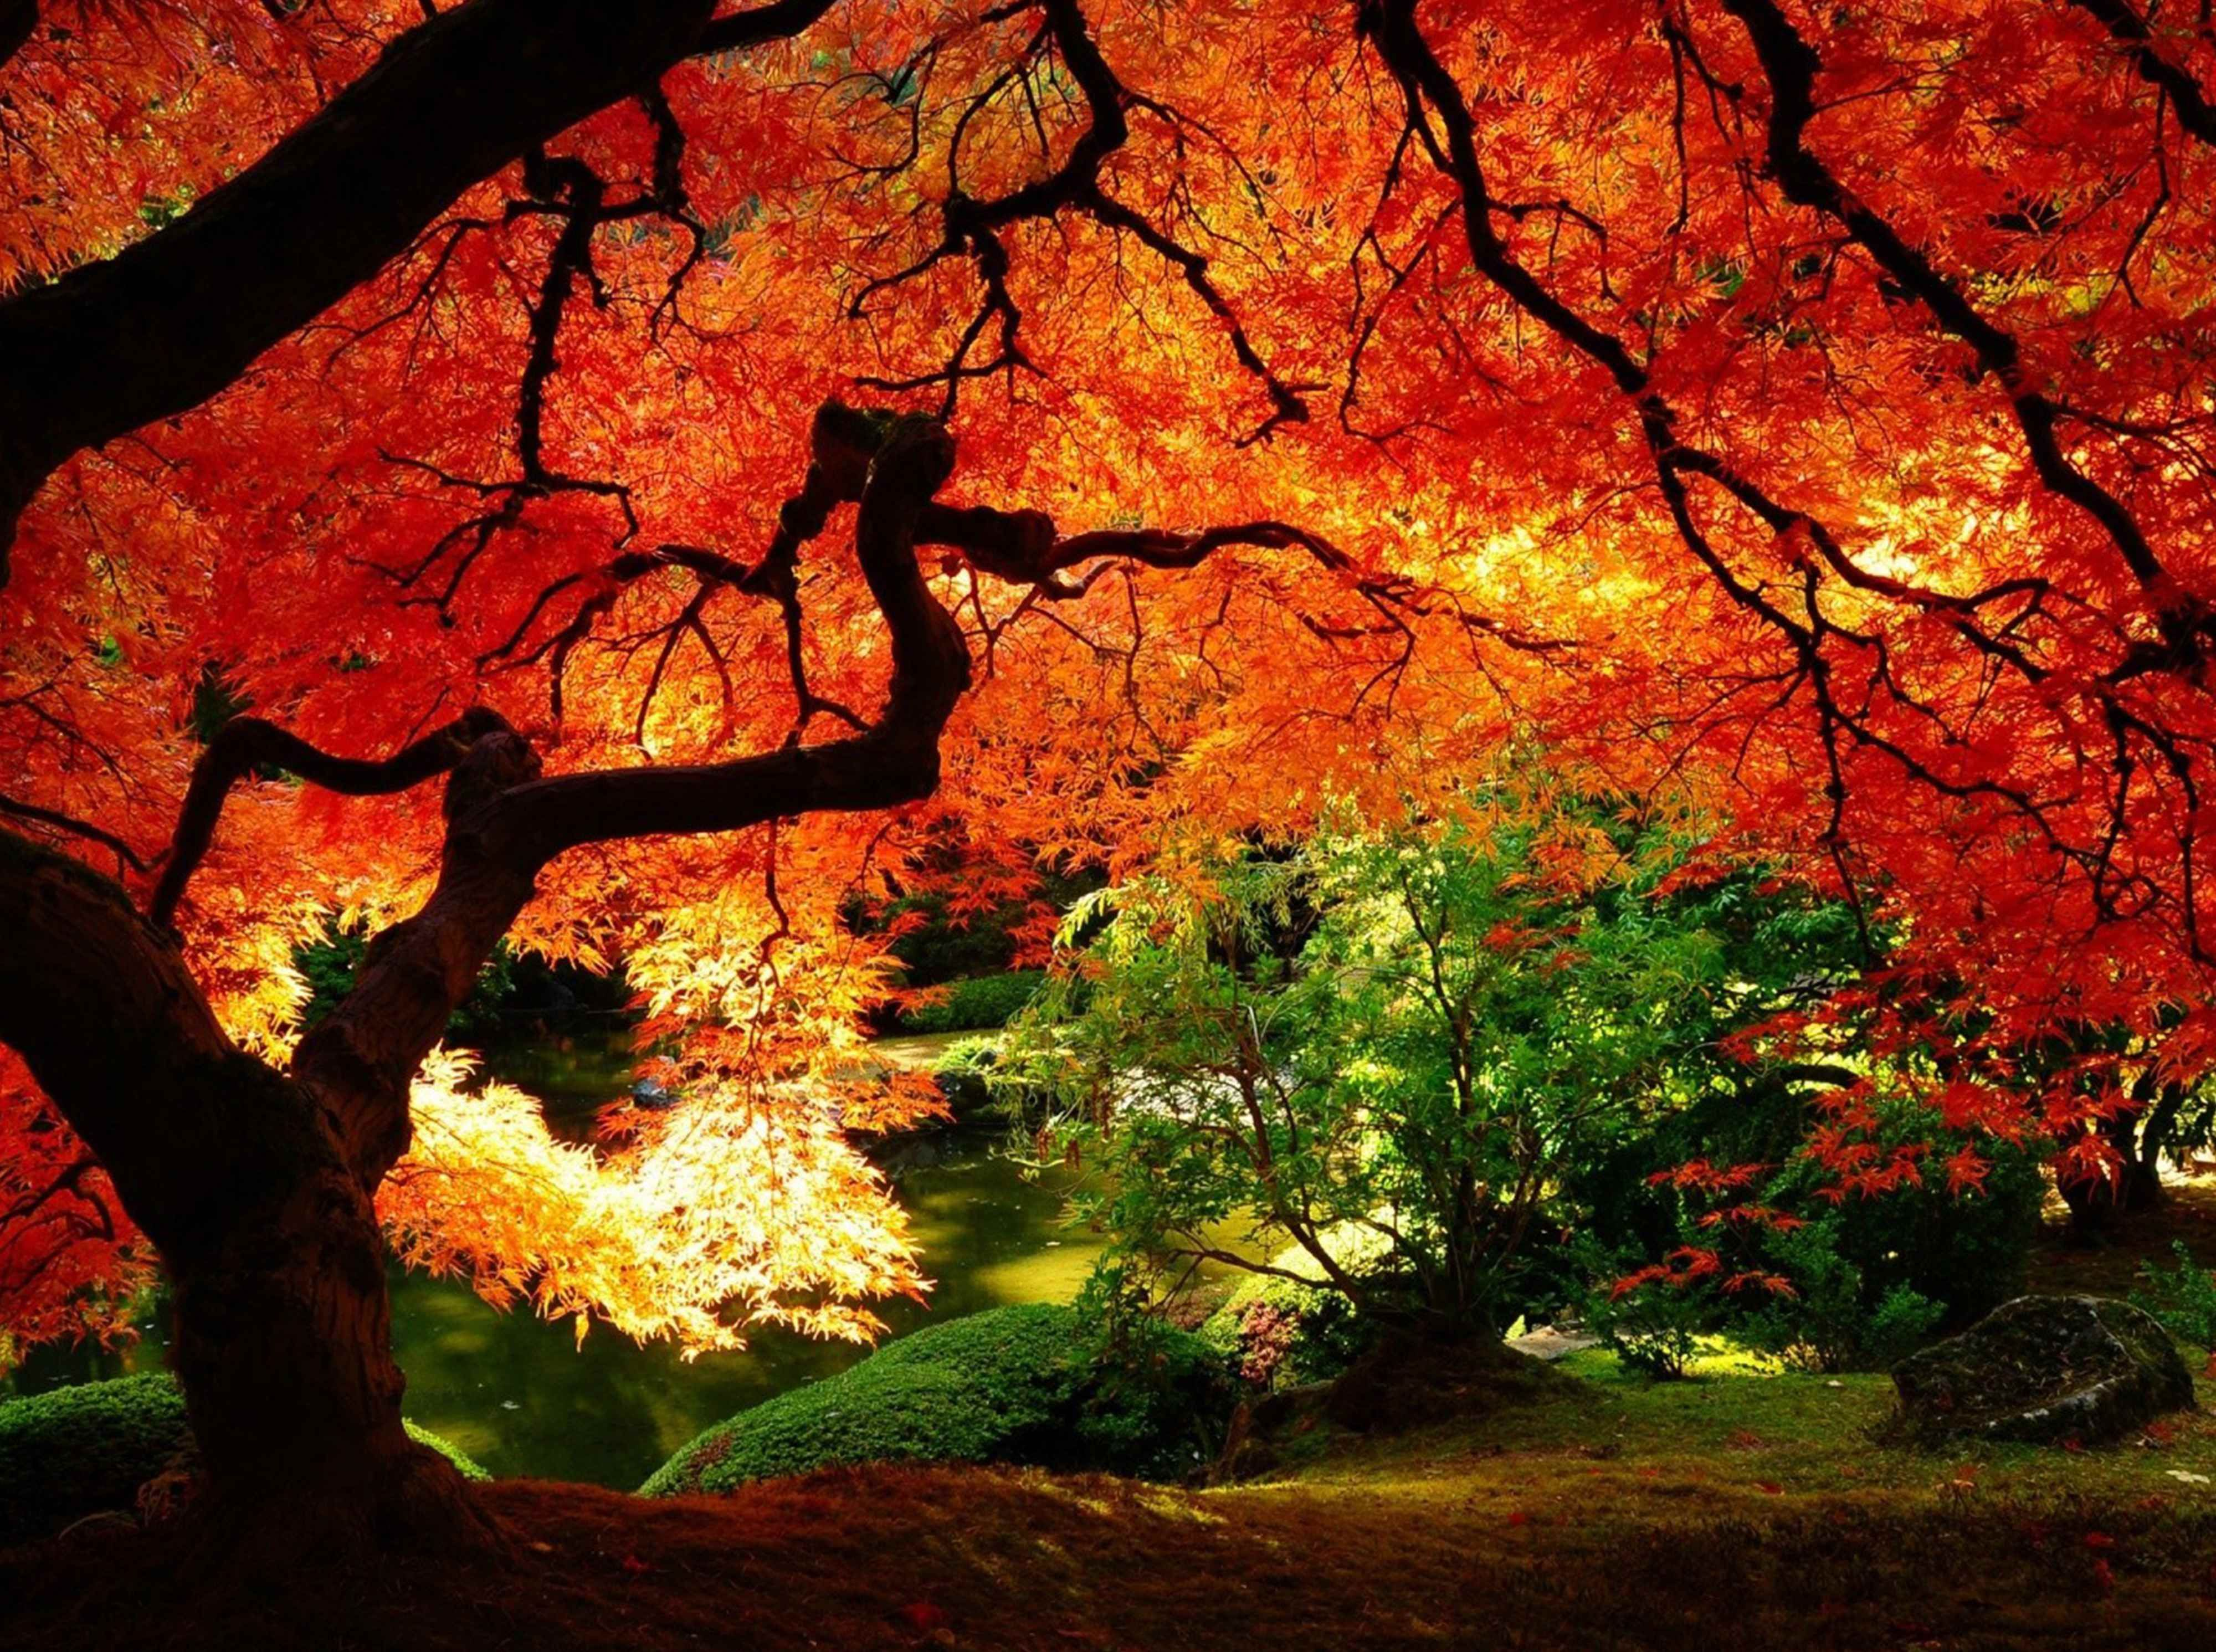 Pin By Christal On Charming Scenery Autumn Landscape Autumn Scenery Beautiful Nature